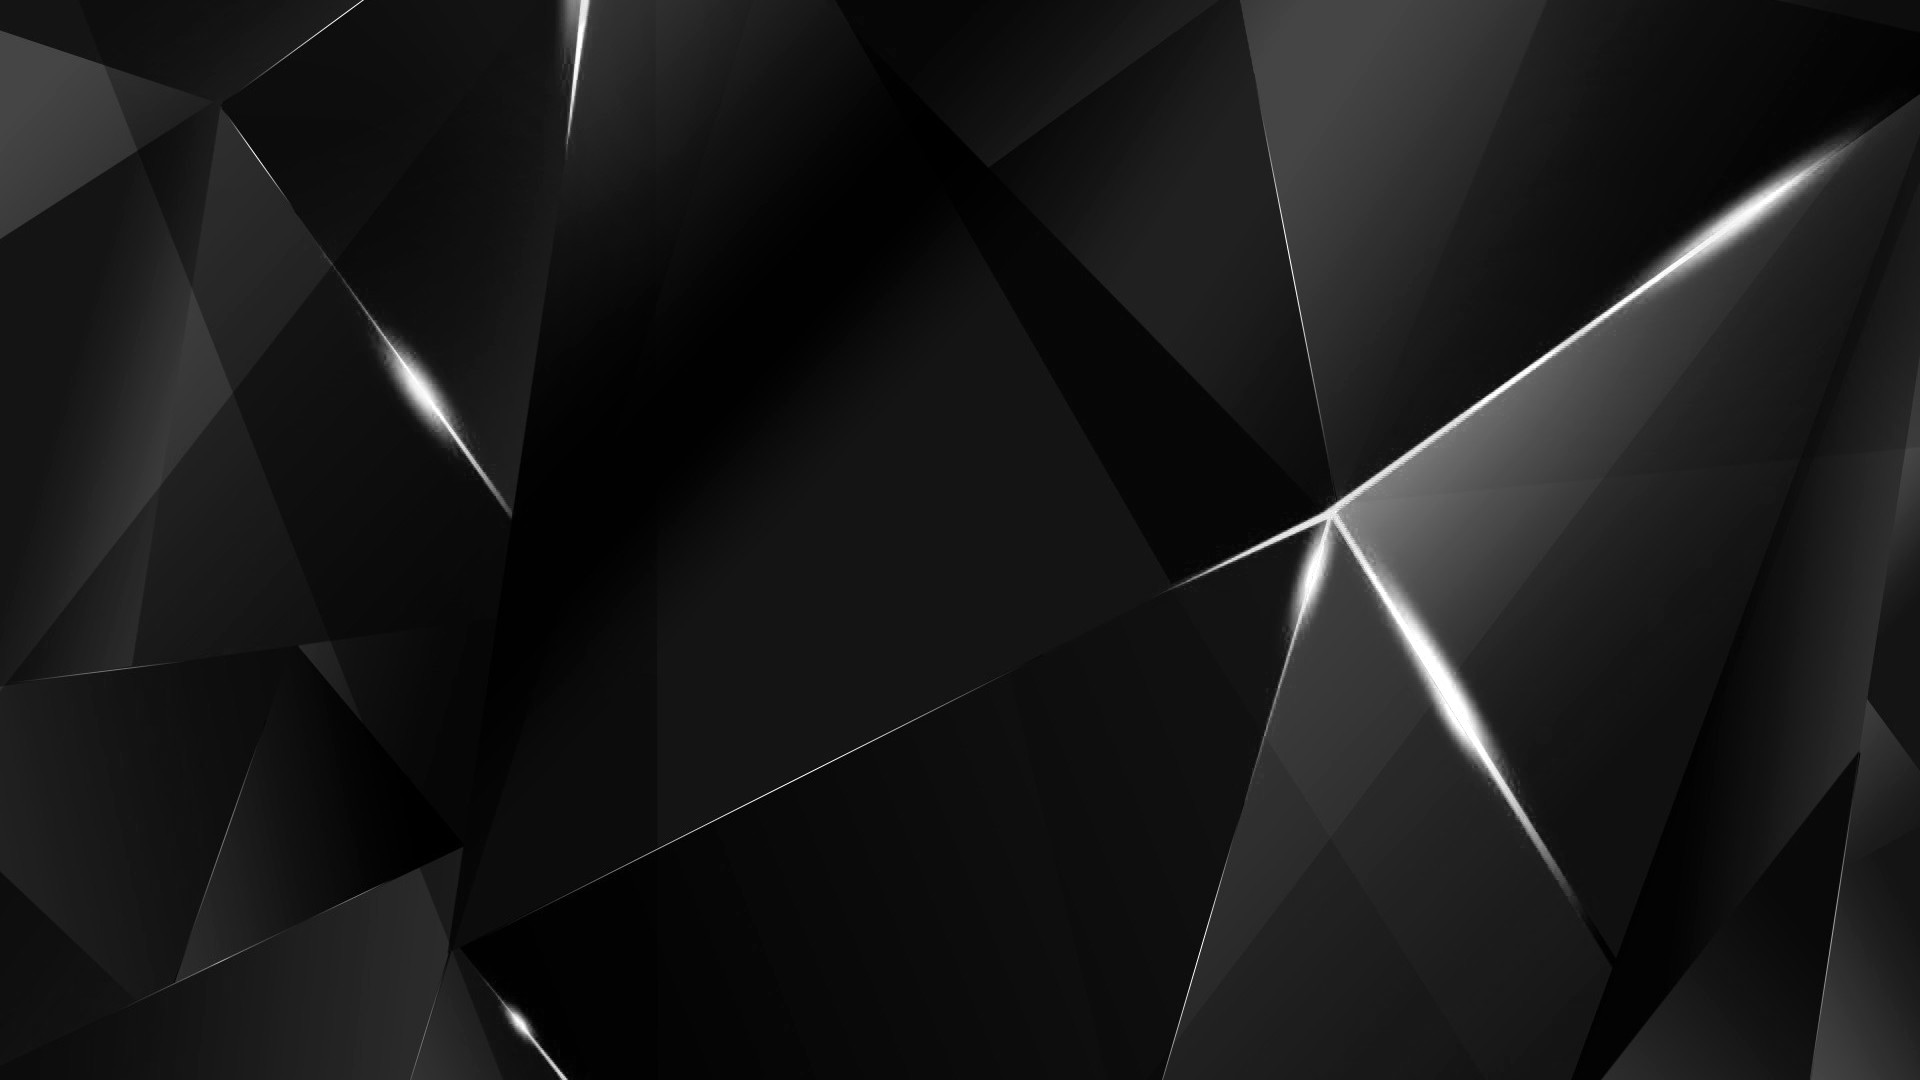 Black And White Abstract Wallpaper 68 Images